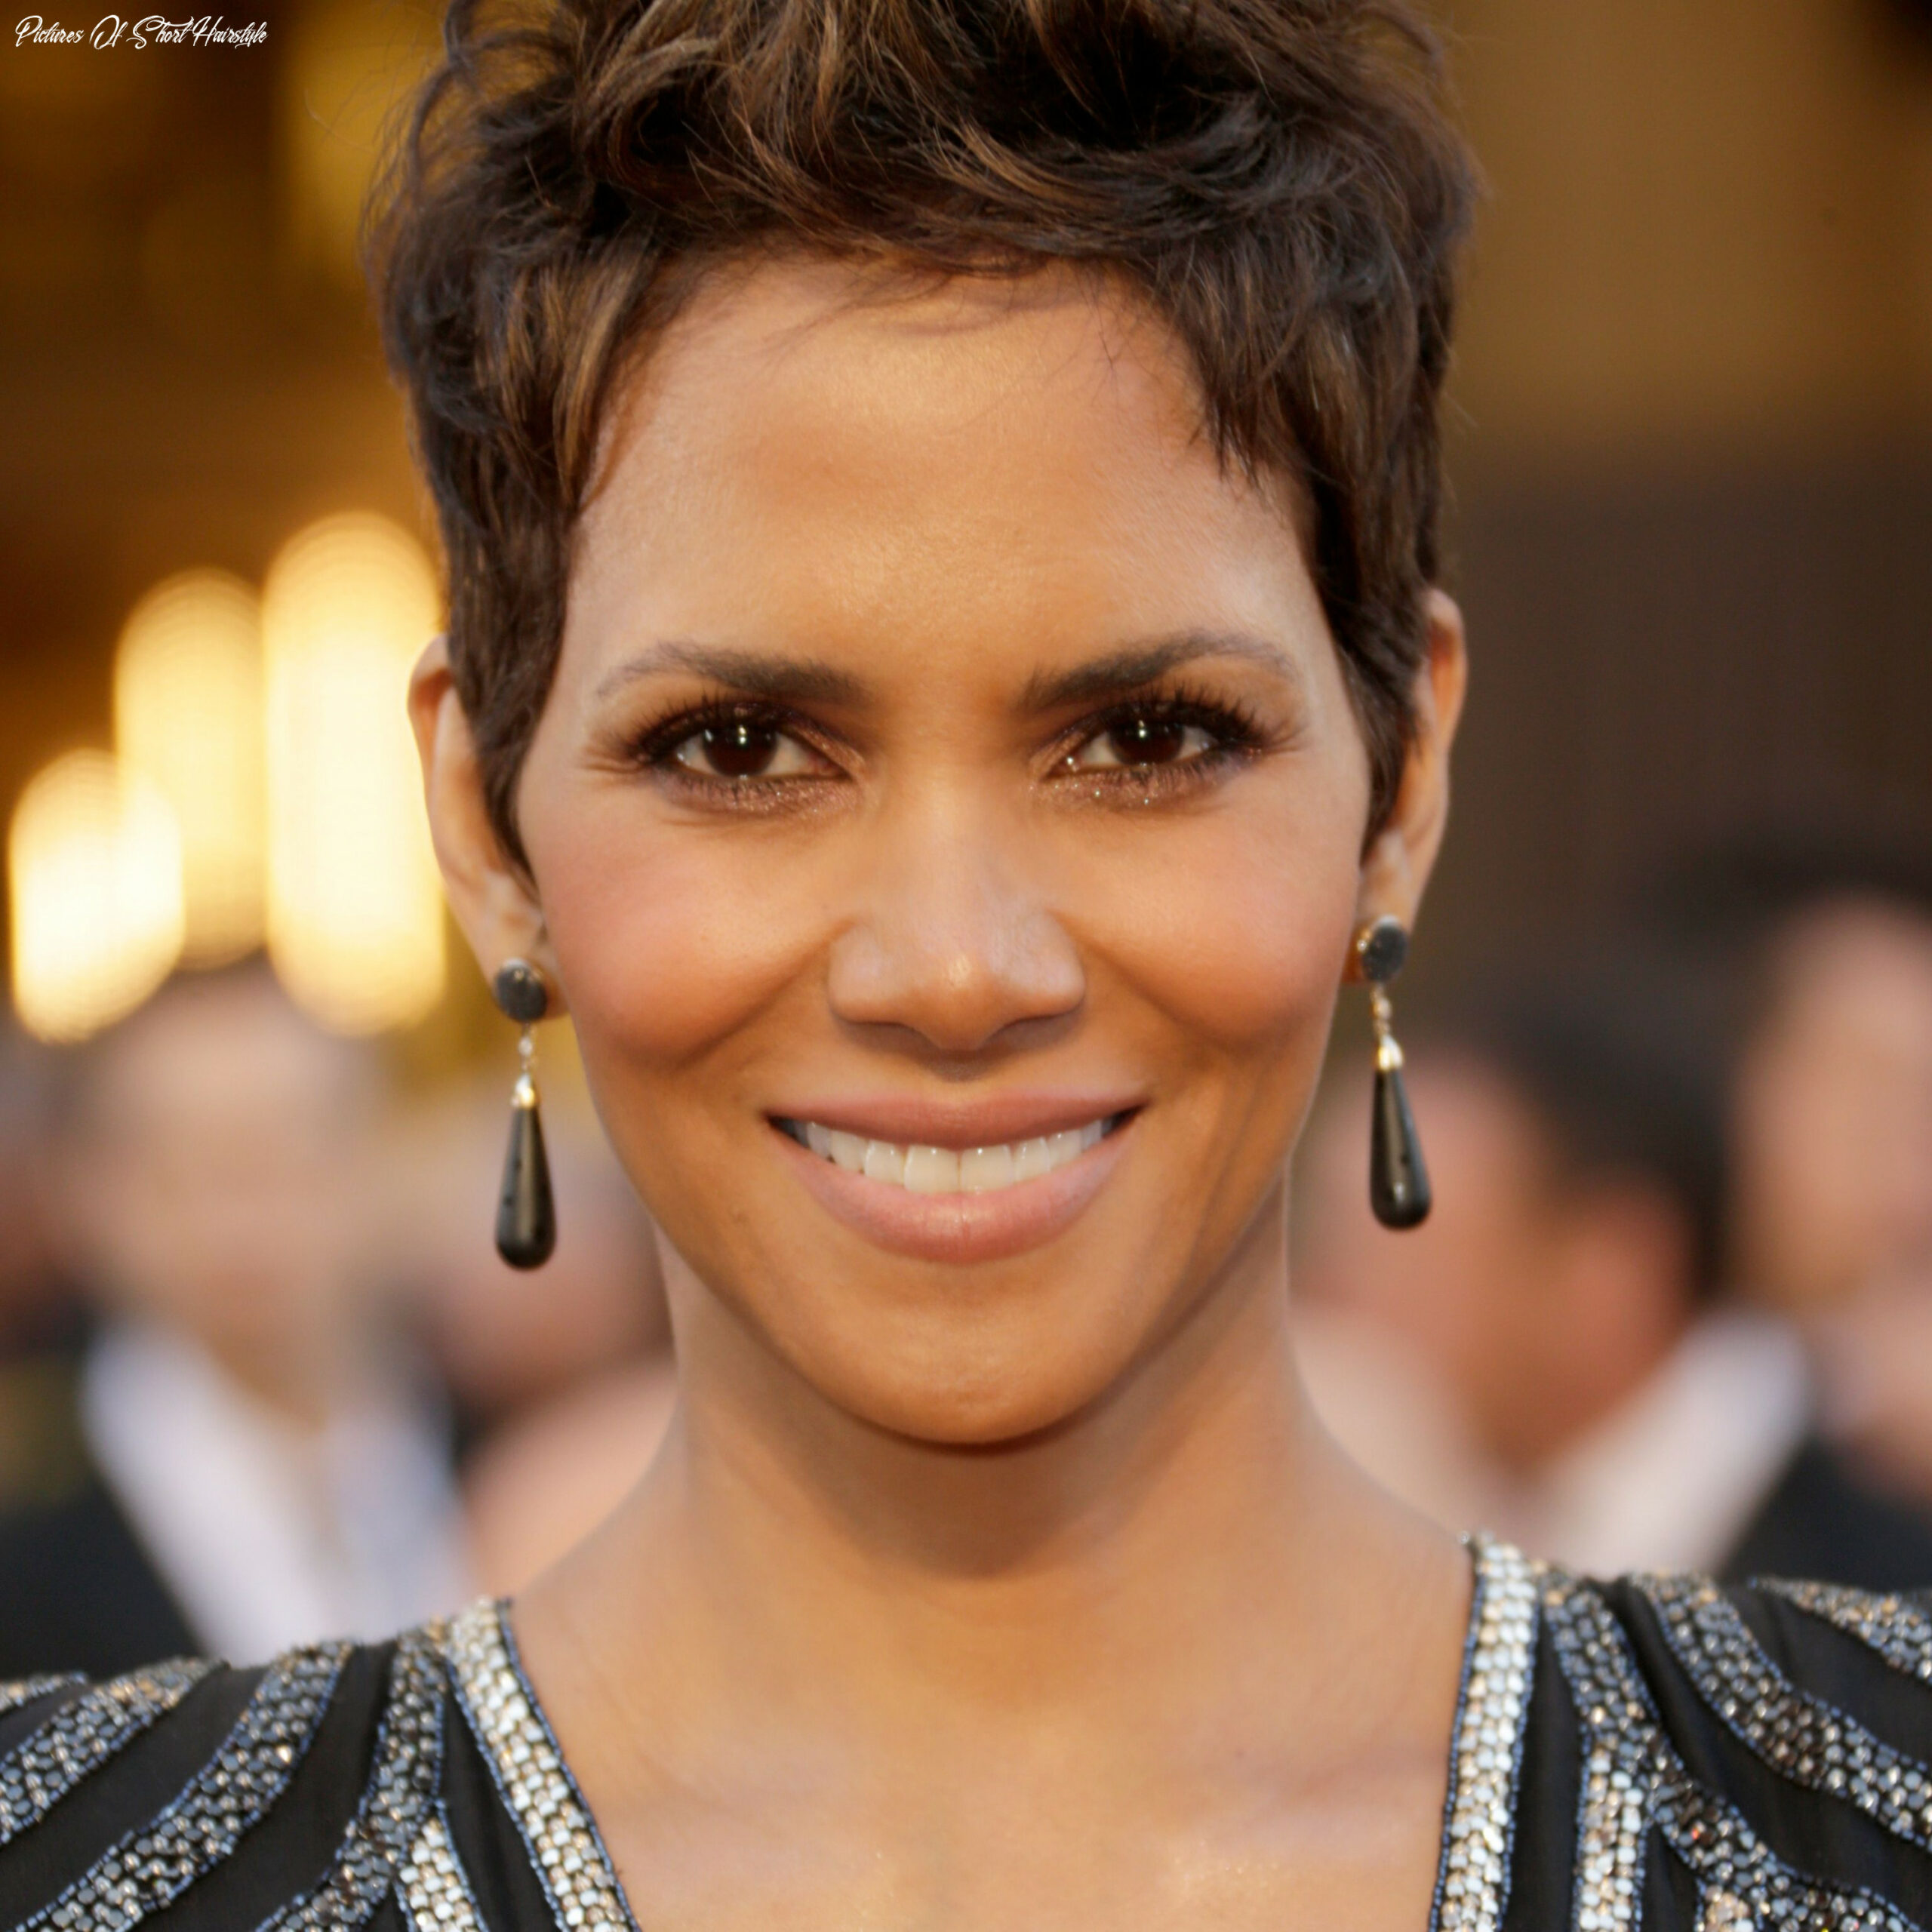 11 classic and cool short hairstyles for older women pictures of short hairstyle